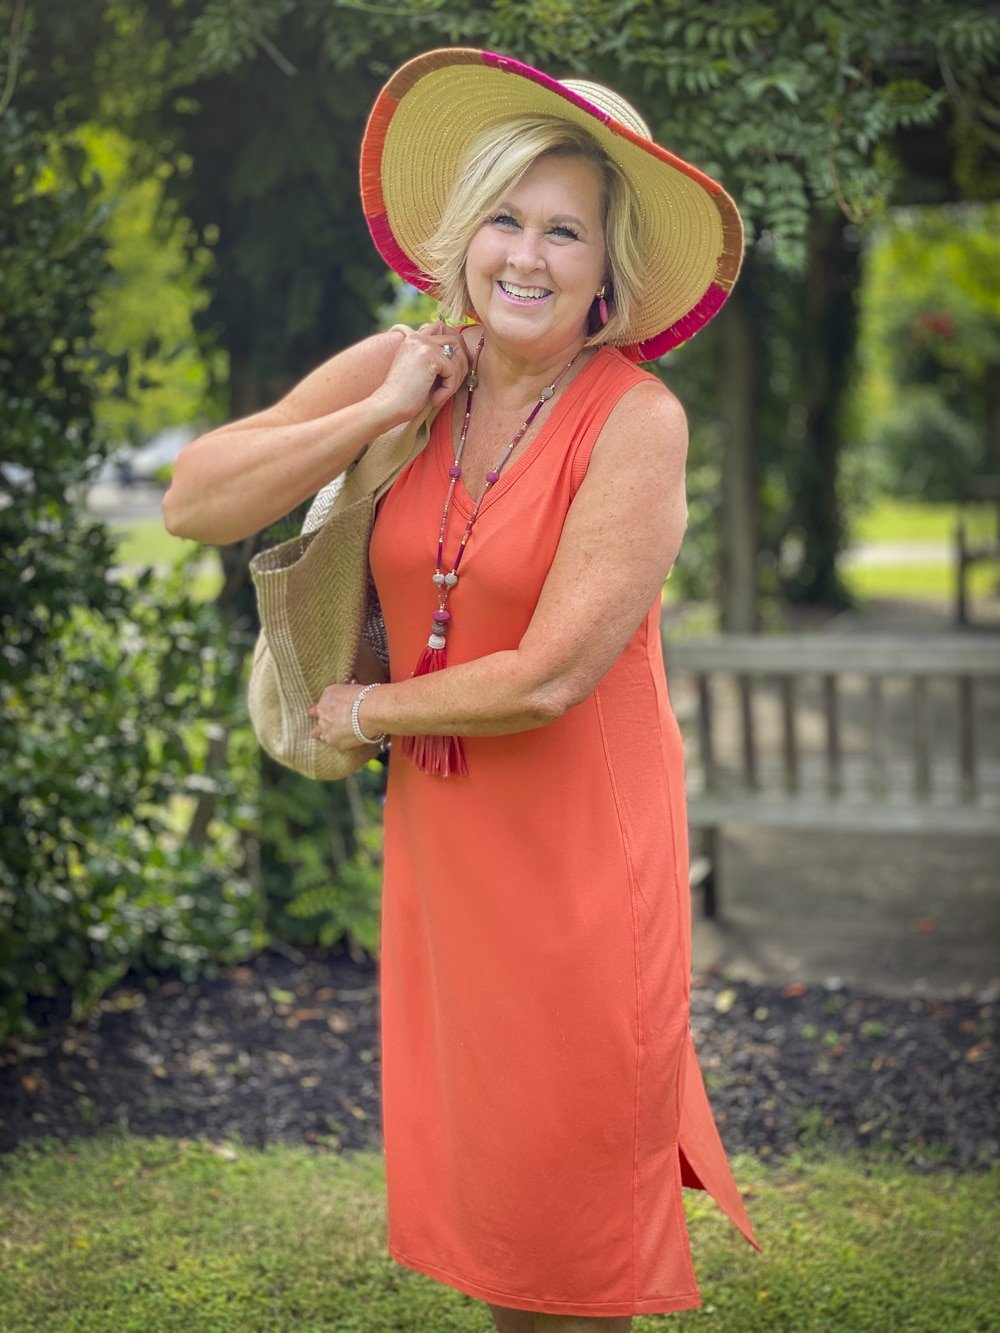 Fashion Blogger 50 Is Not Old is wearing an orange midi dress with a tassel necklace in pink, a yarn trimmed straw hat, and carrying a jute tote all from Chico's